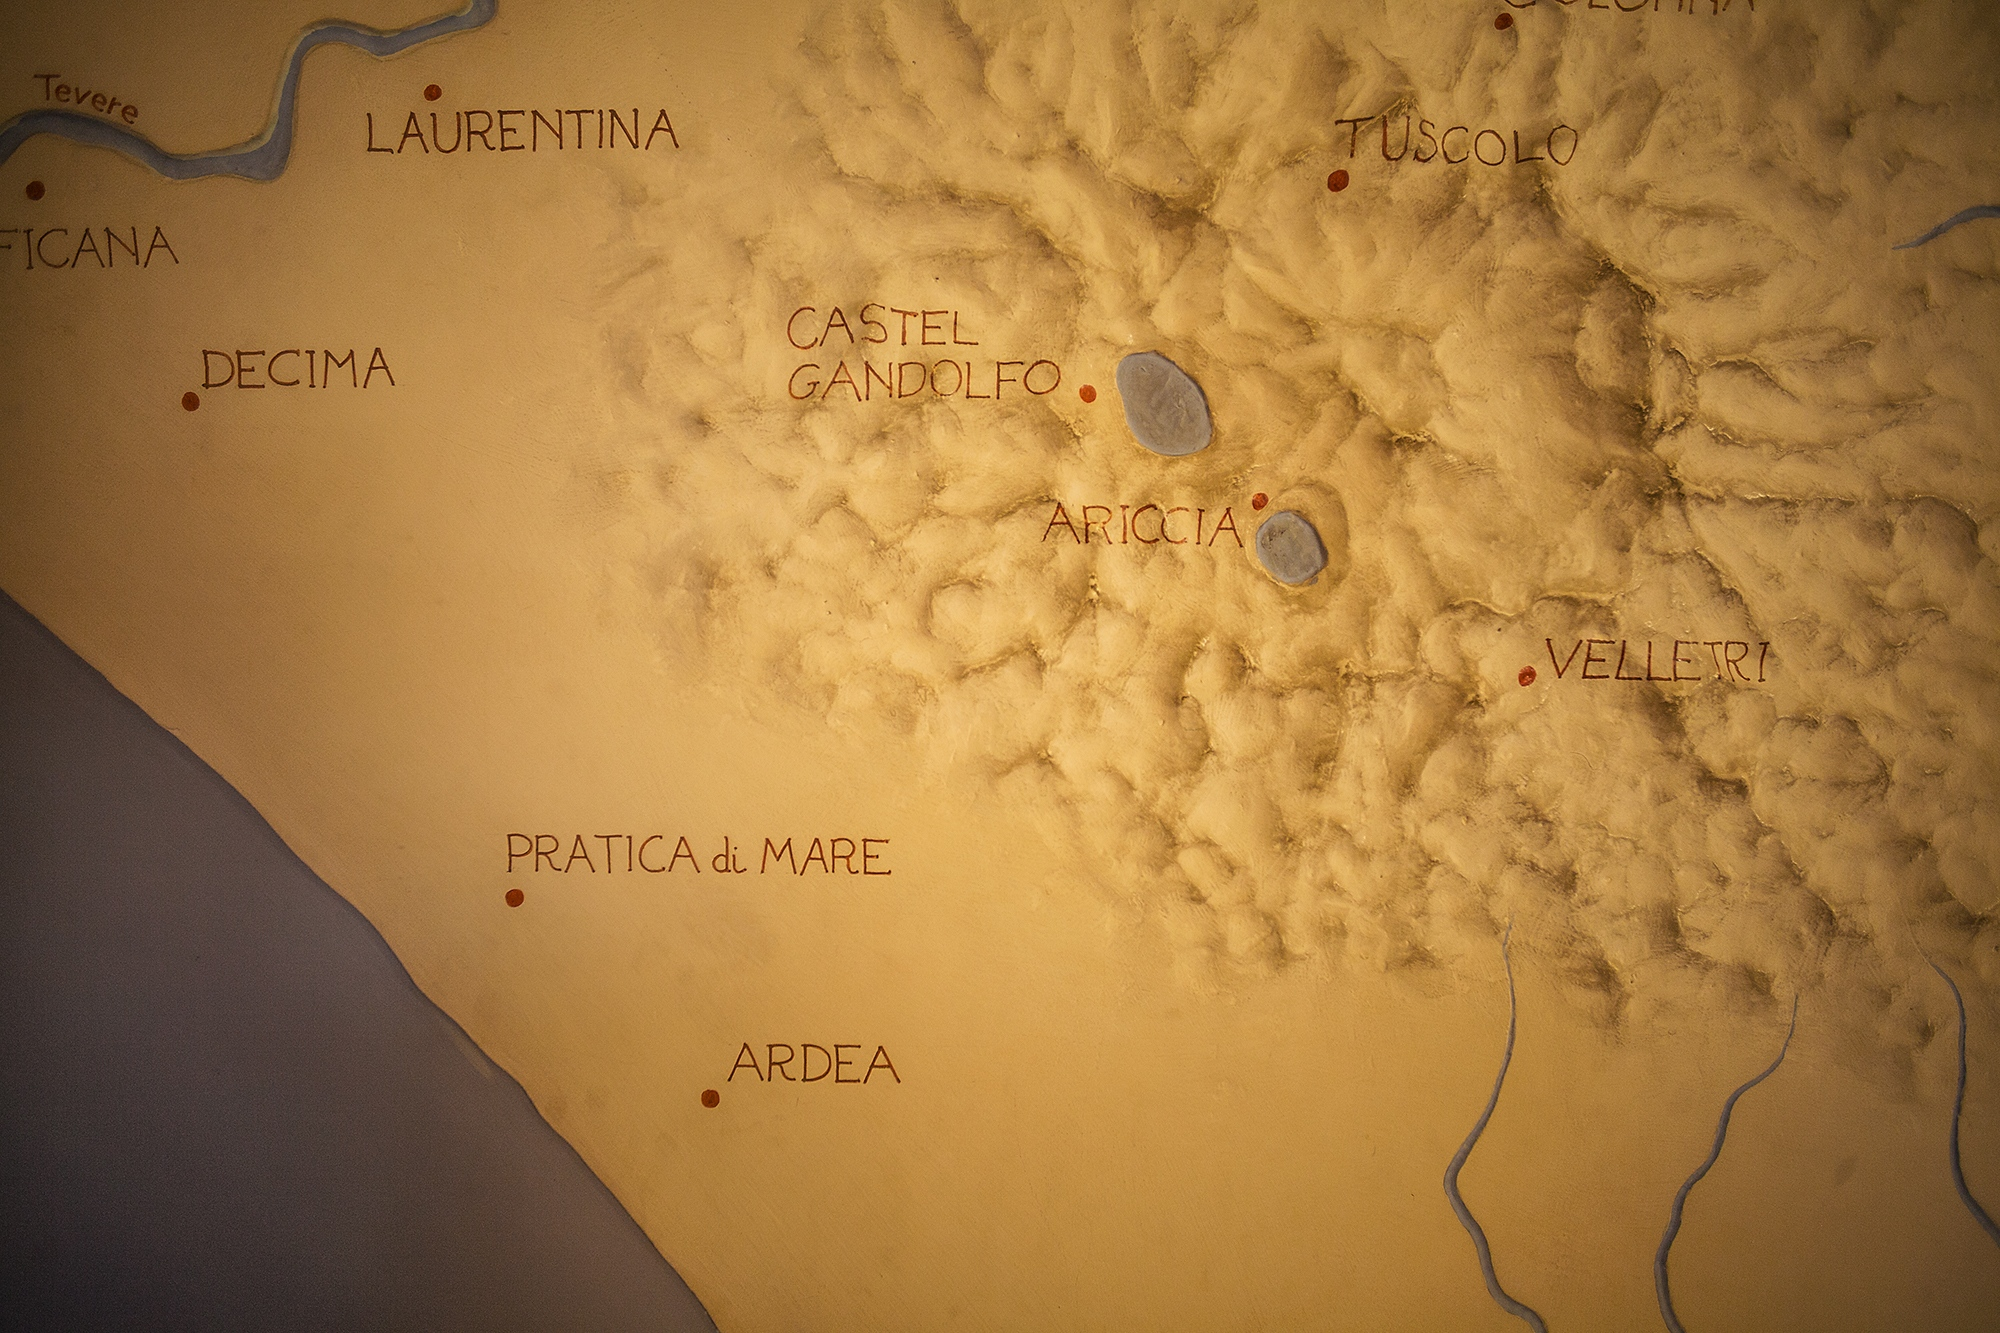 An ancient map of the area